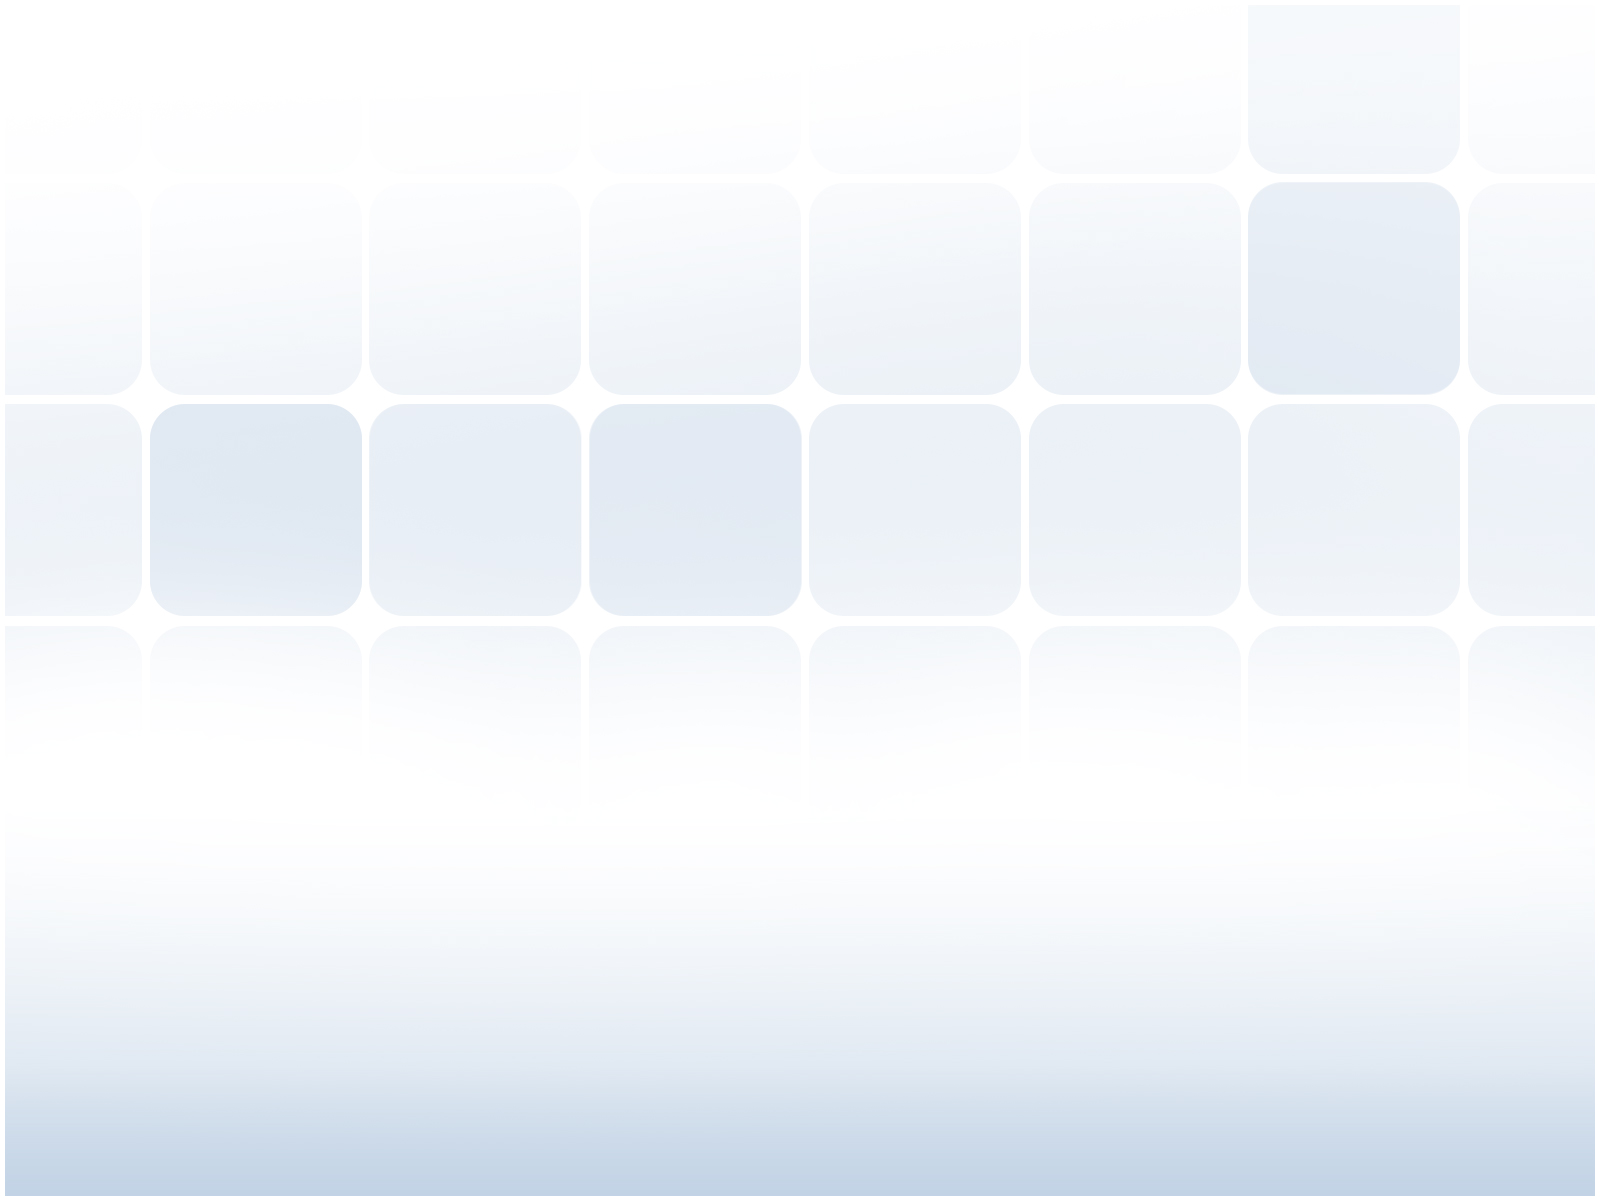 White Grid PPT Backgrounds